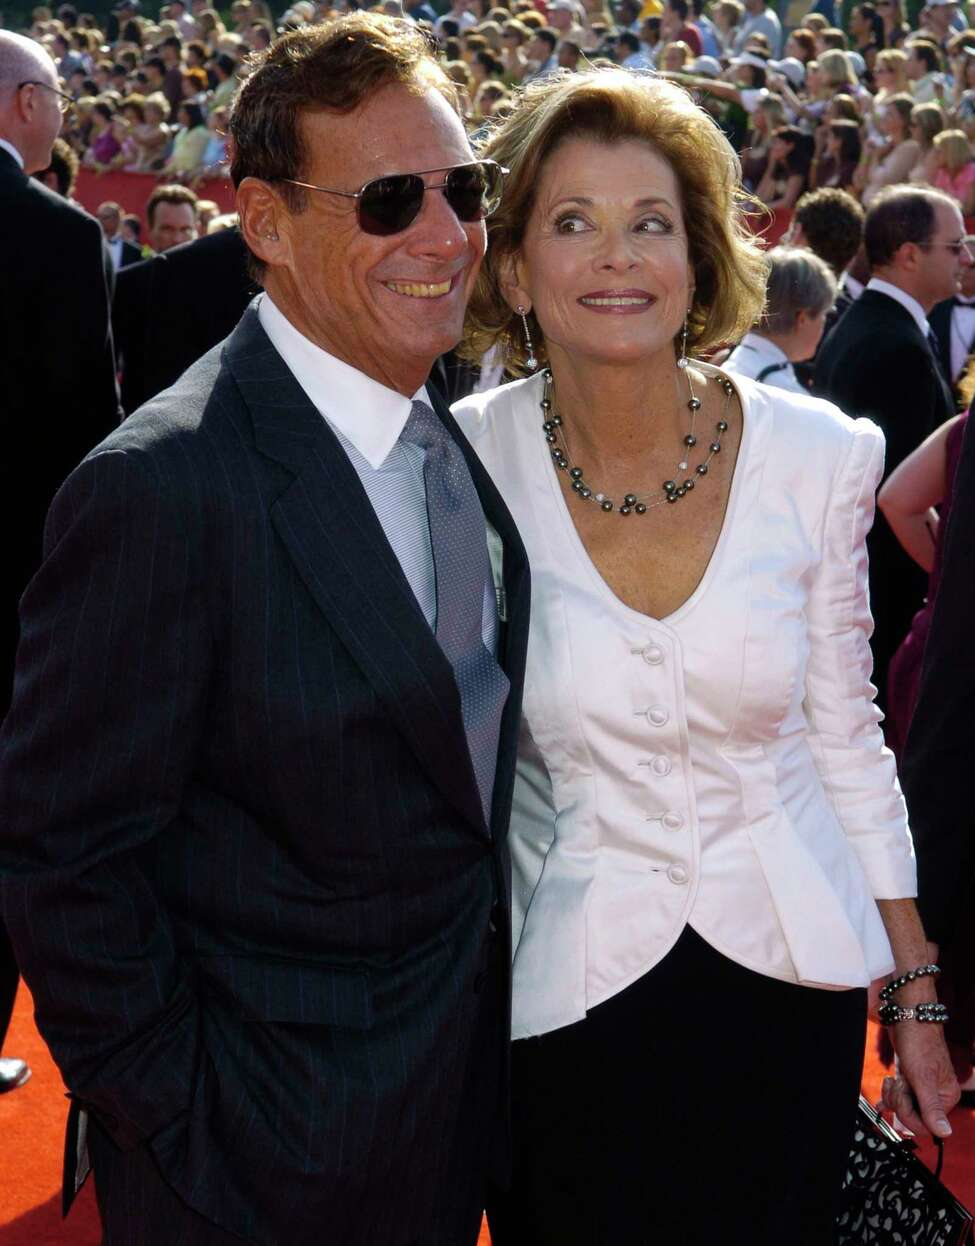 FILE - This Sept. 18, 2005 file photo shows Ron Leibman, left, with his wife Jessica Walter at the 57th Annual Primetime Emmy Awards in Los Angeles. Leibman, who appeared in movies, theater and television in a career that spanned six decades and won a Tony for Tony Kushner's iconic play a€Angels in America,